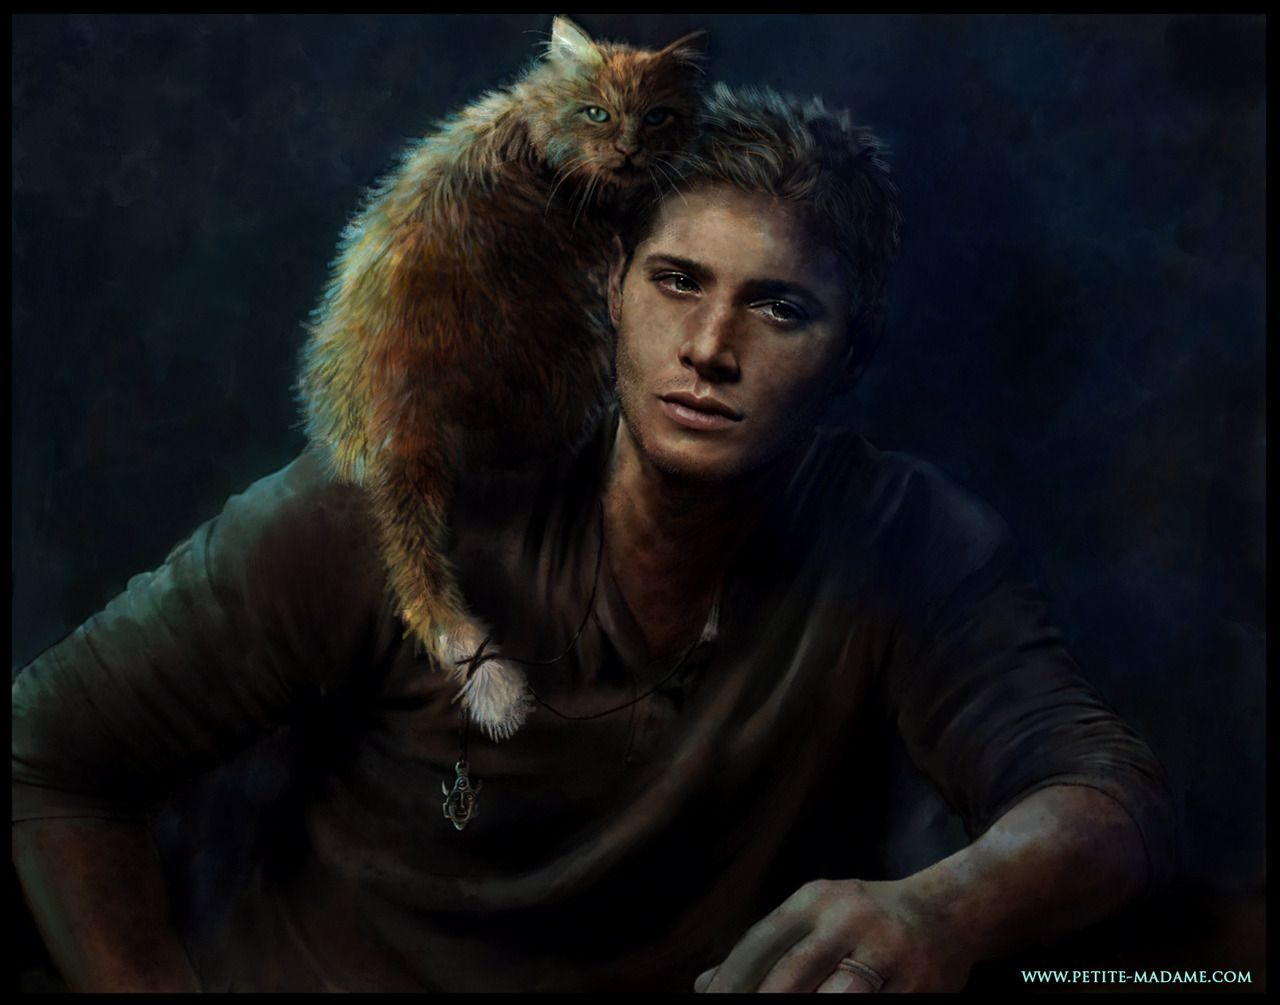 The great thing about being a fan artist is that you can reinterpret a character exactly as you want. Jensen Ackles a.k.a.Dean Winchester never had a cat on his shoulder in Supernatural but thanks to my Wacom Graphire 4 and 25 hours of hard work now...